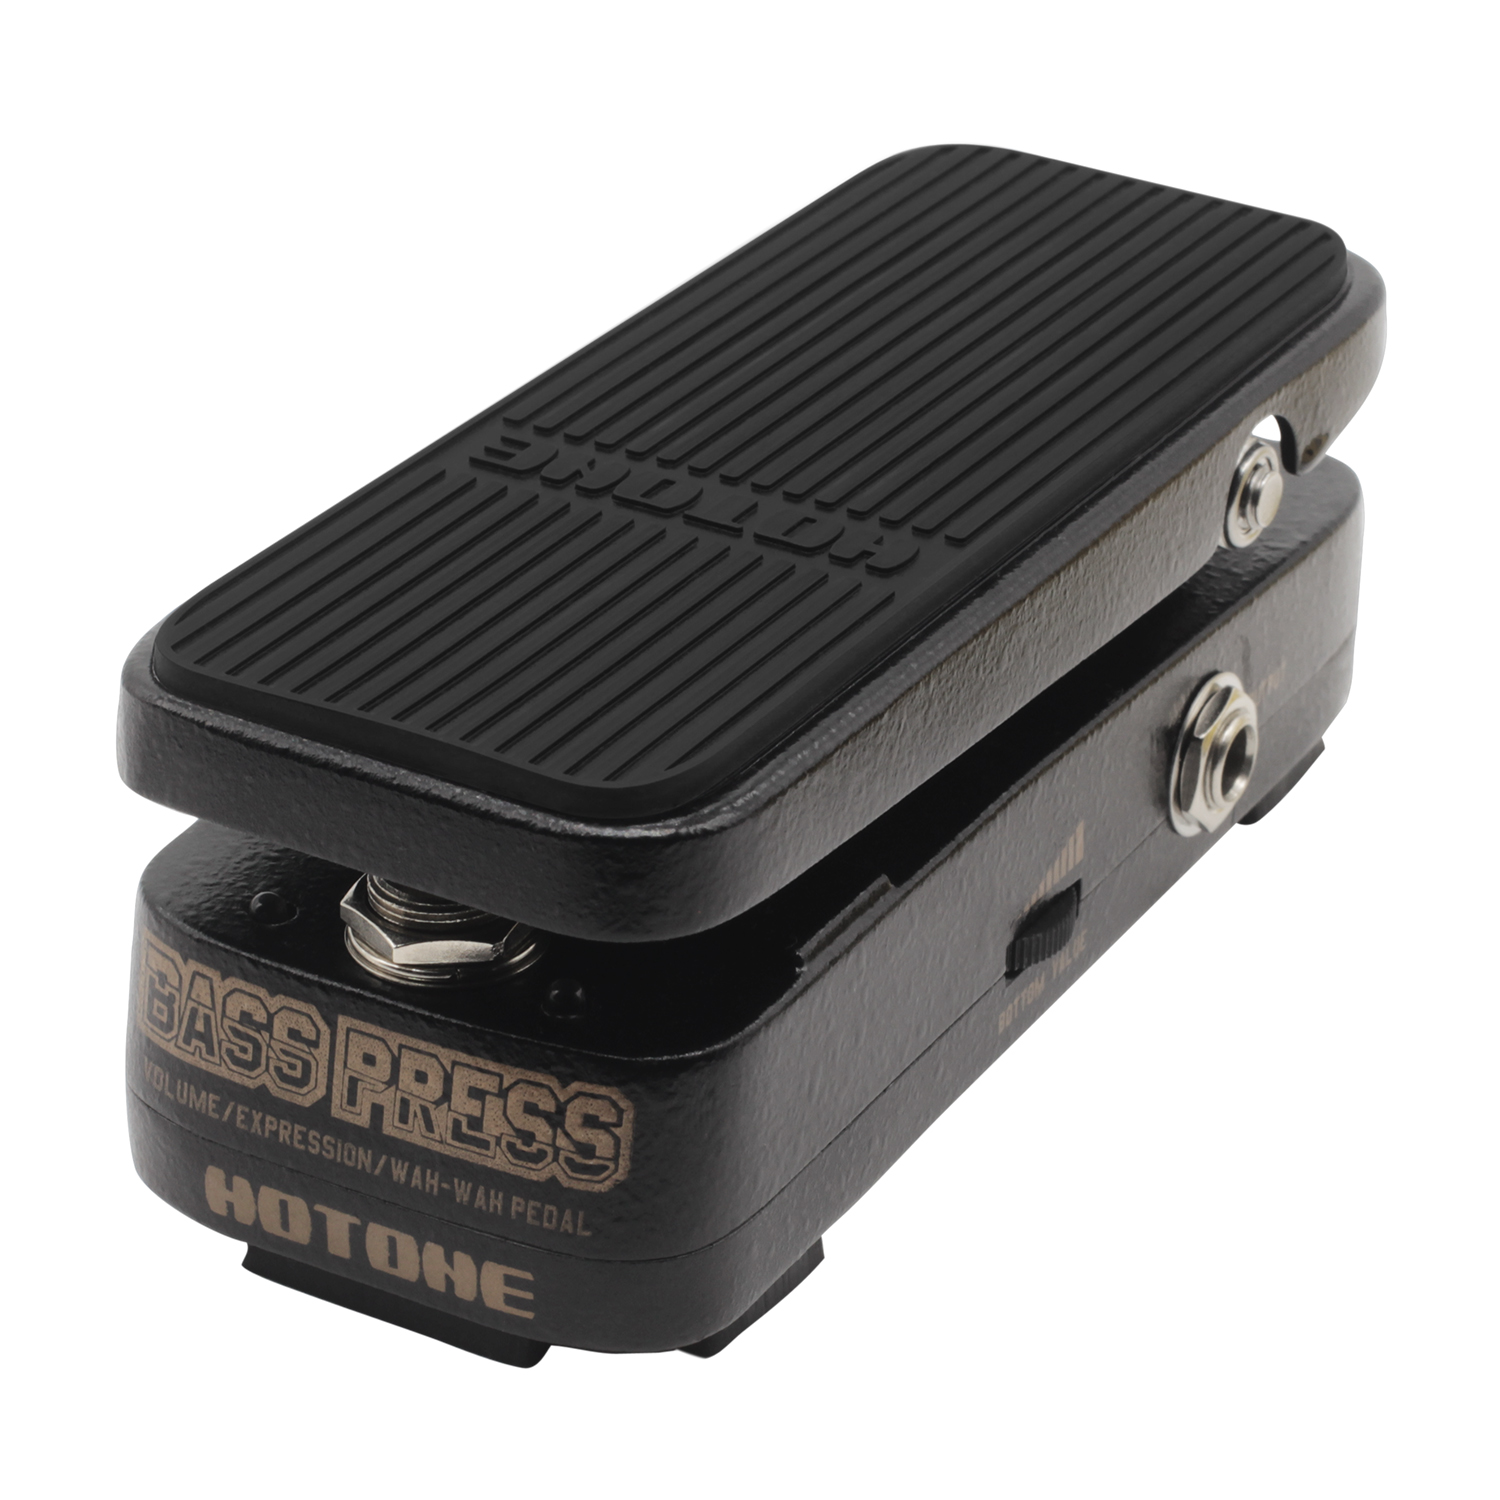 Hotone Bass Press Volume Expression Wah Effect Pedal 3-in-1 Pedal Electric Bass Effects Strong Clear Sound hotone soul press volume expression wah wah guitar pedal cry baby sound